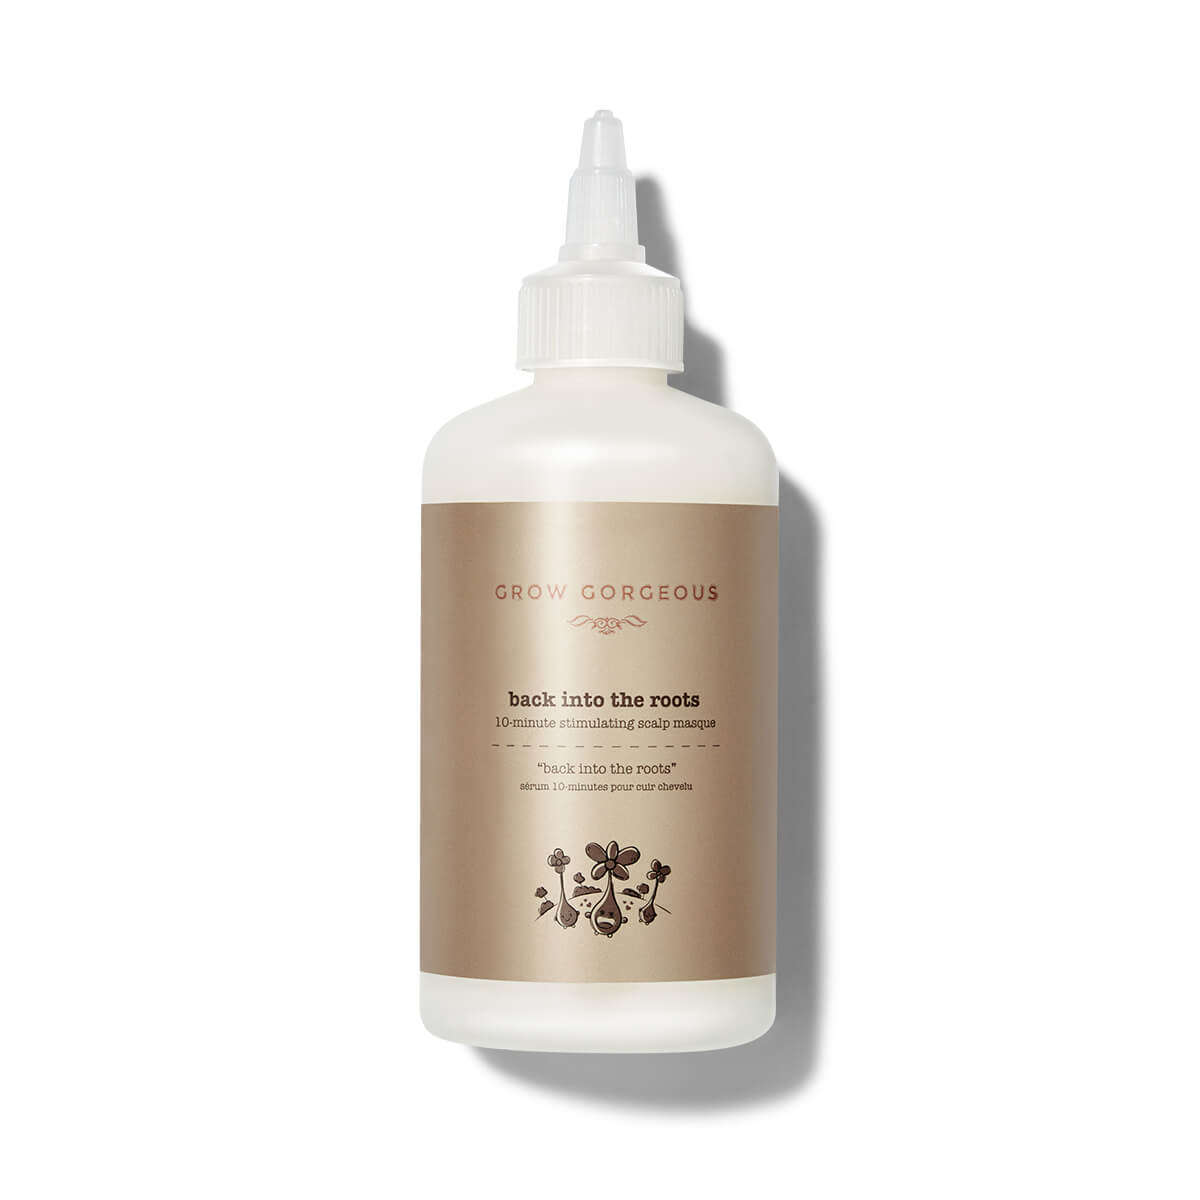 Grow Gorgeous Scalp Stimulating Masque